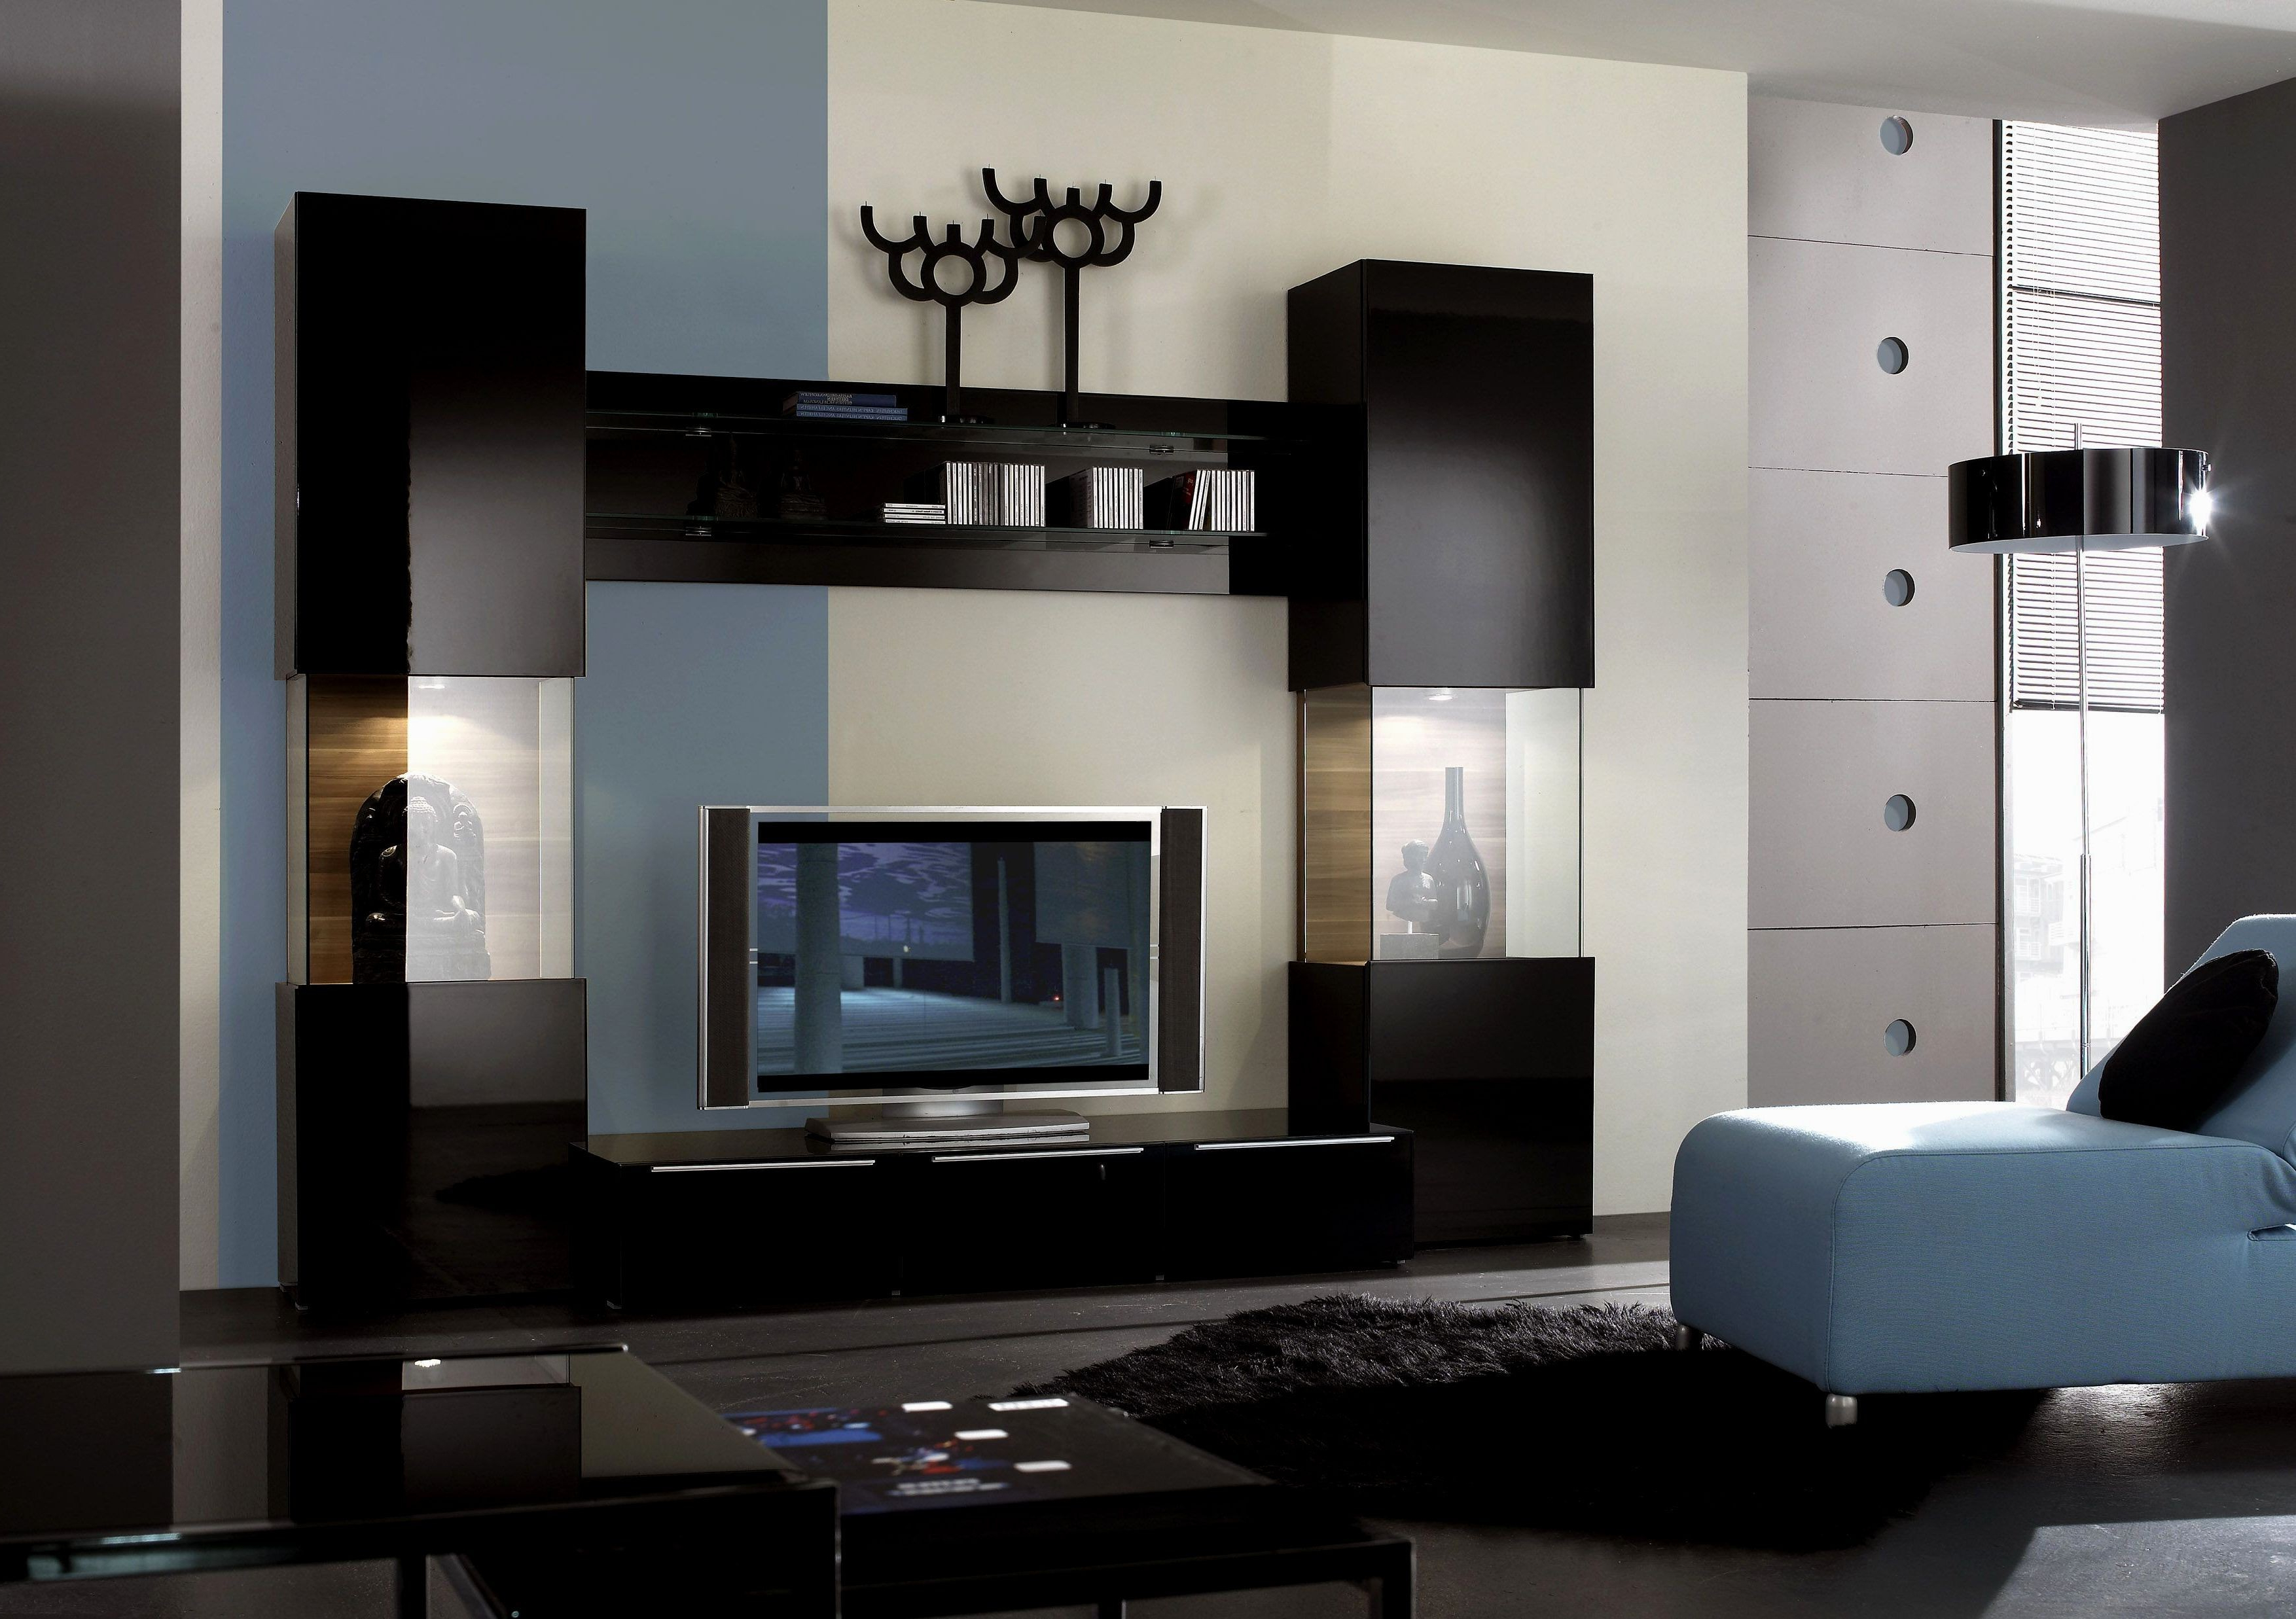 Fashionable Modern Tv Cabinets Designs Regarding Tv Stands Designs 2018 With Latest Cabinet Plus Modern Stand Design (View 2 of 20)